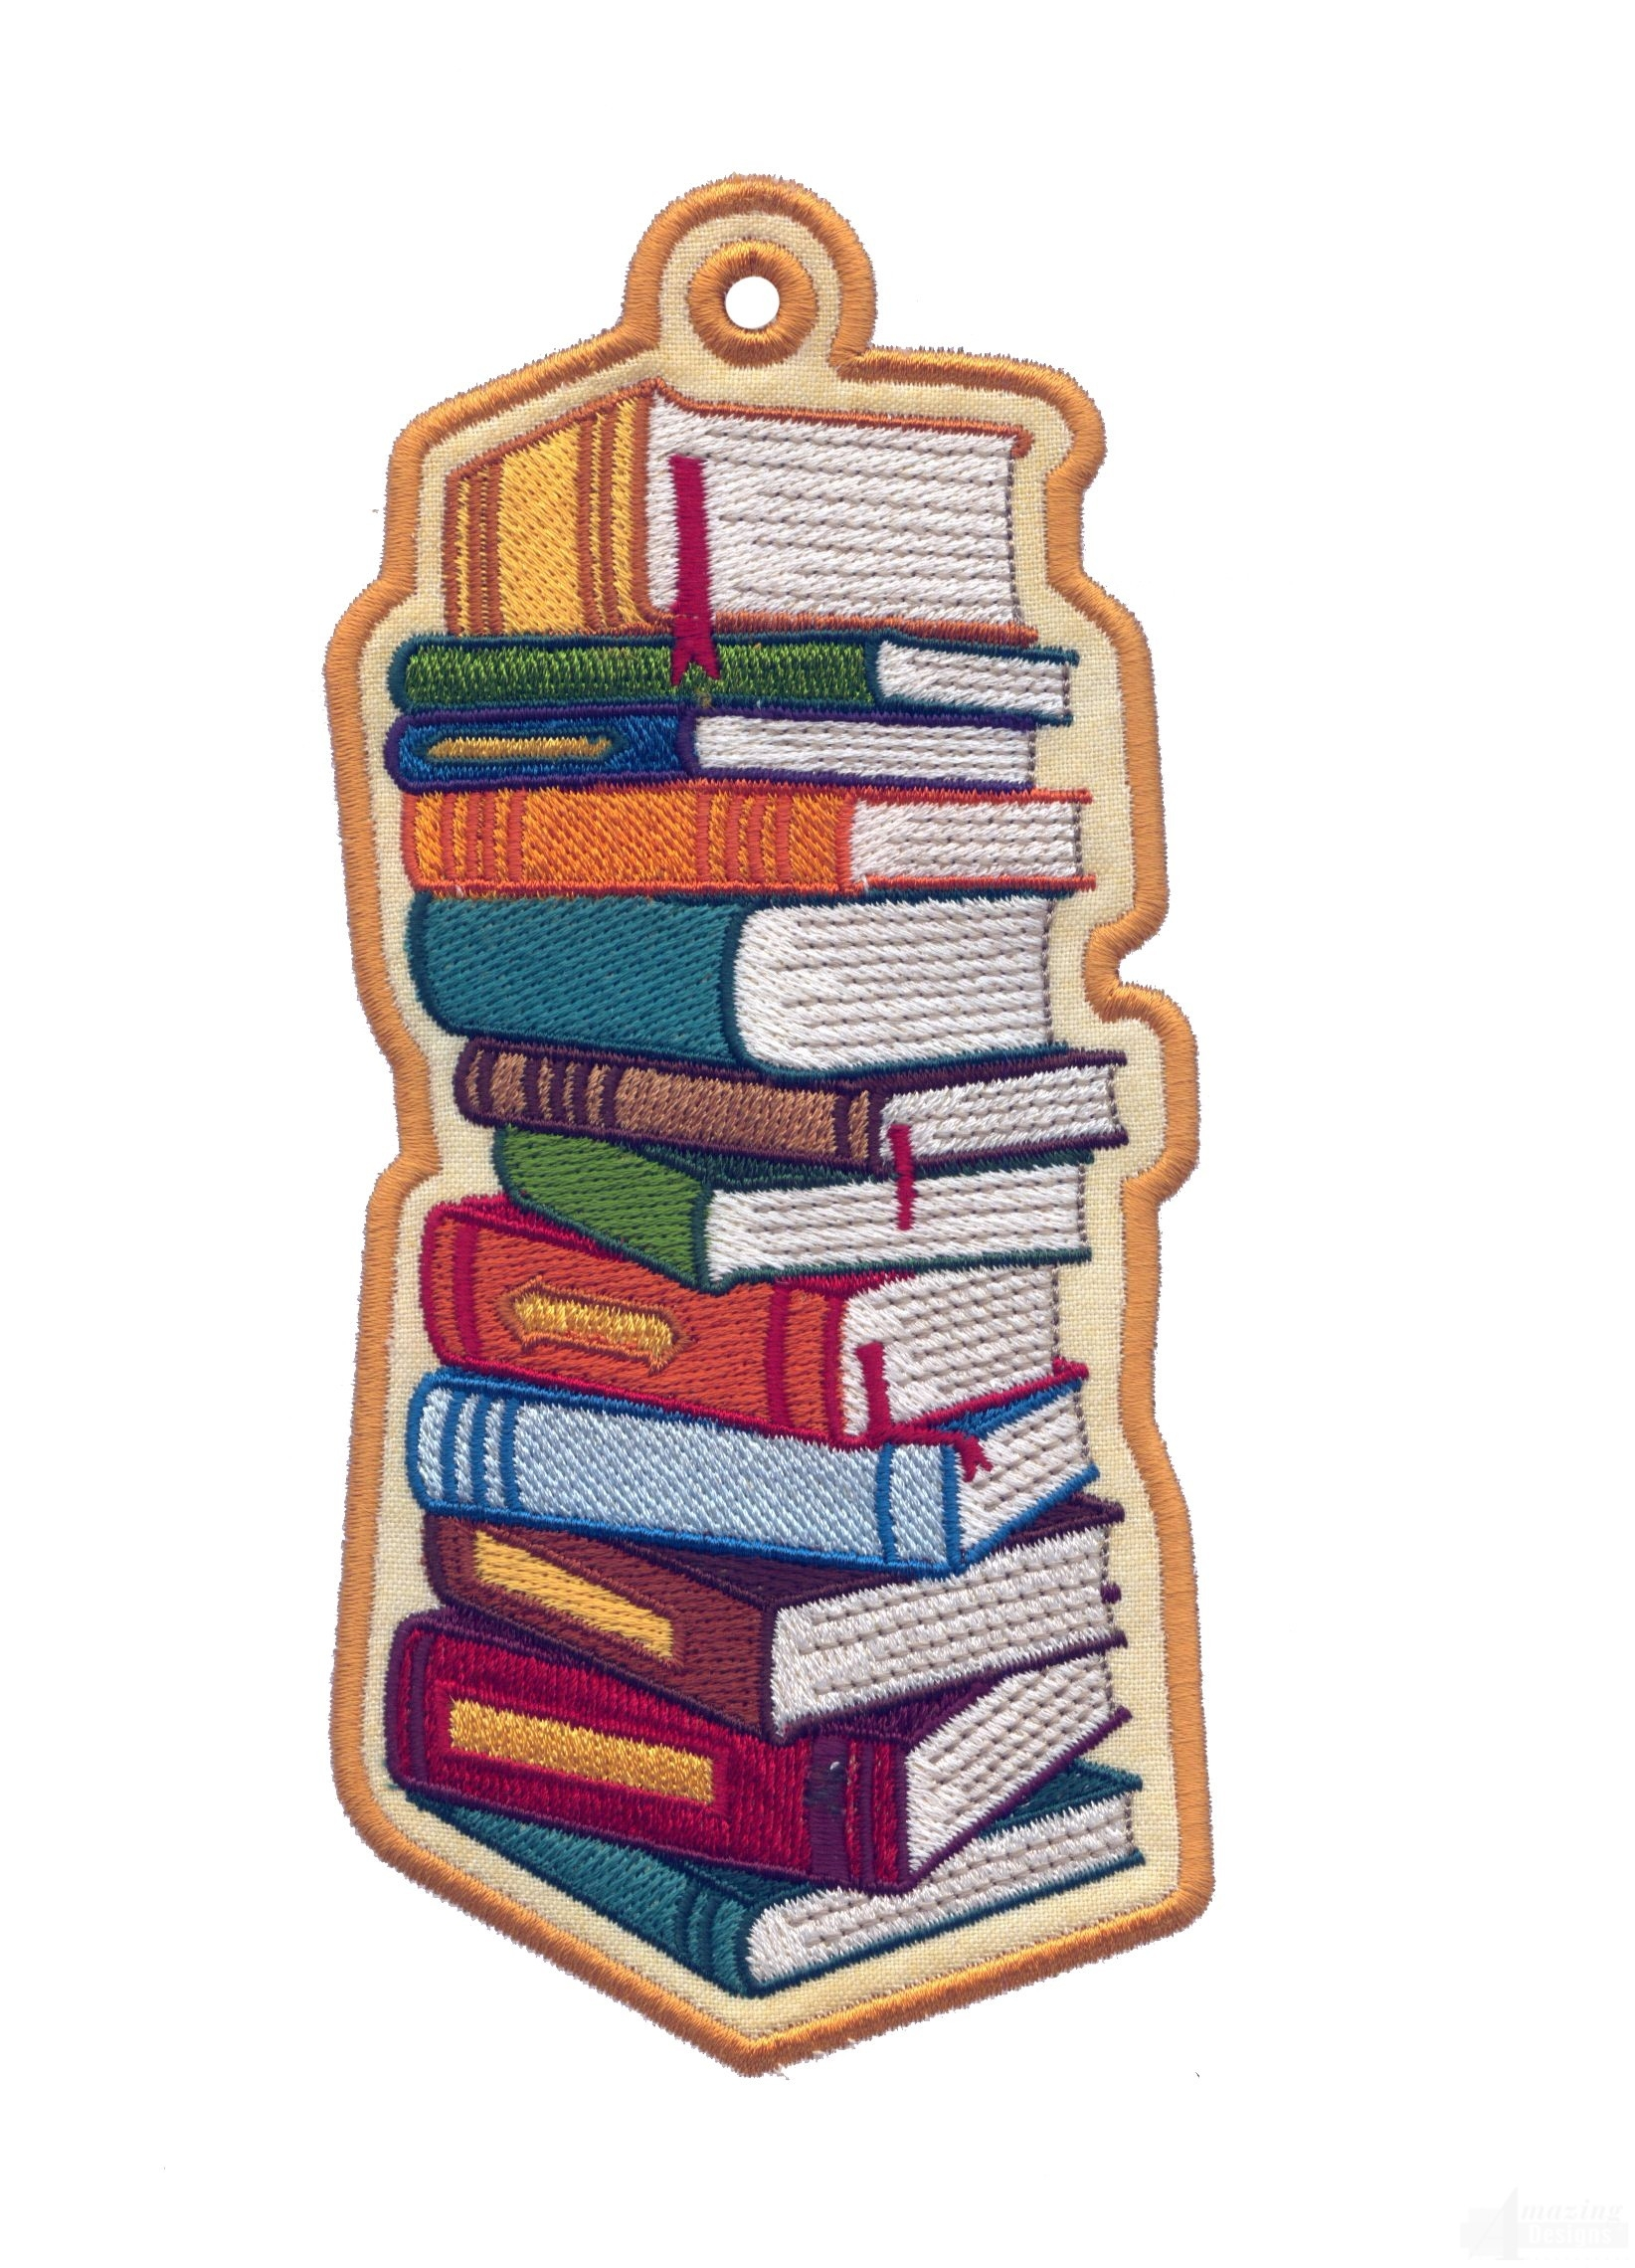 In The Hoop Novelty Bookmarks Embroidery Design Collection with regard to Bookmarks For Books Designs 27943